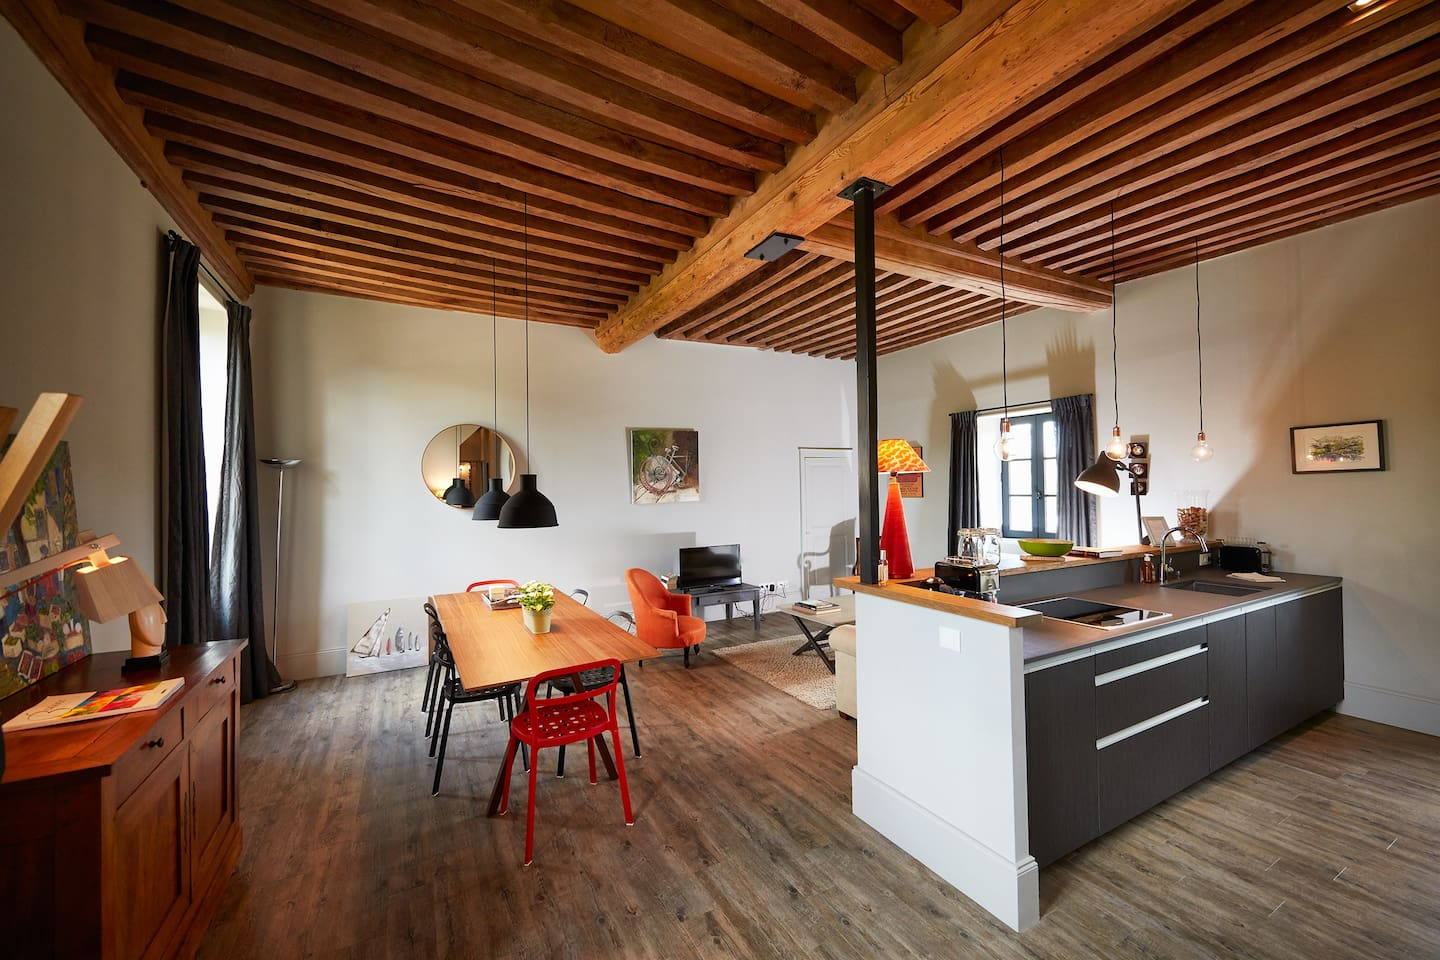 Large living room, open plan kitchen, wood beams ceiling, sitting area, large dining table for 8 persons